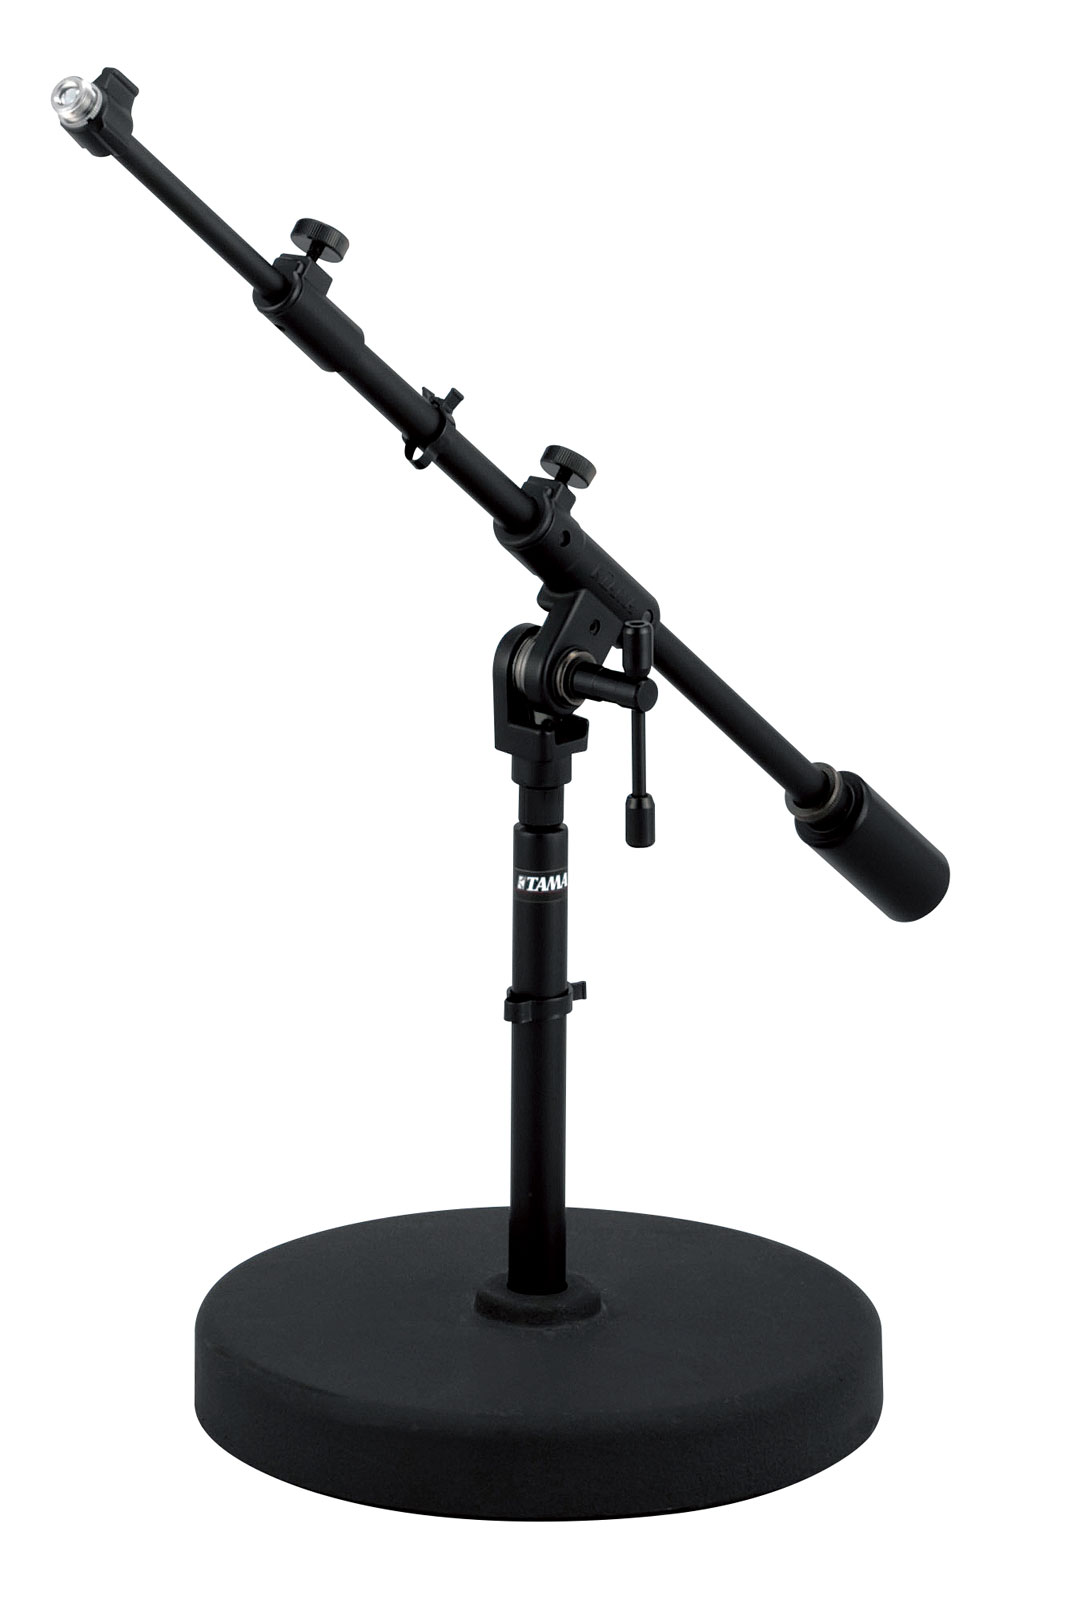 STUDIO LOW BOOM MICROPHONE STAND ROUND BASE MS736RELBK